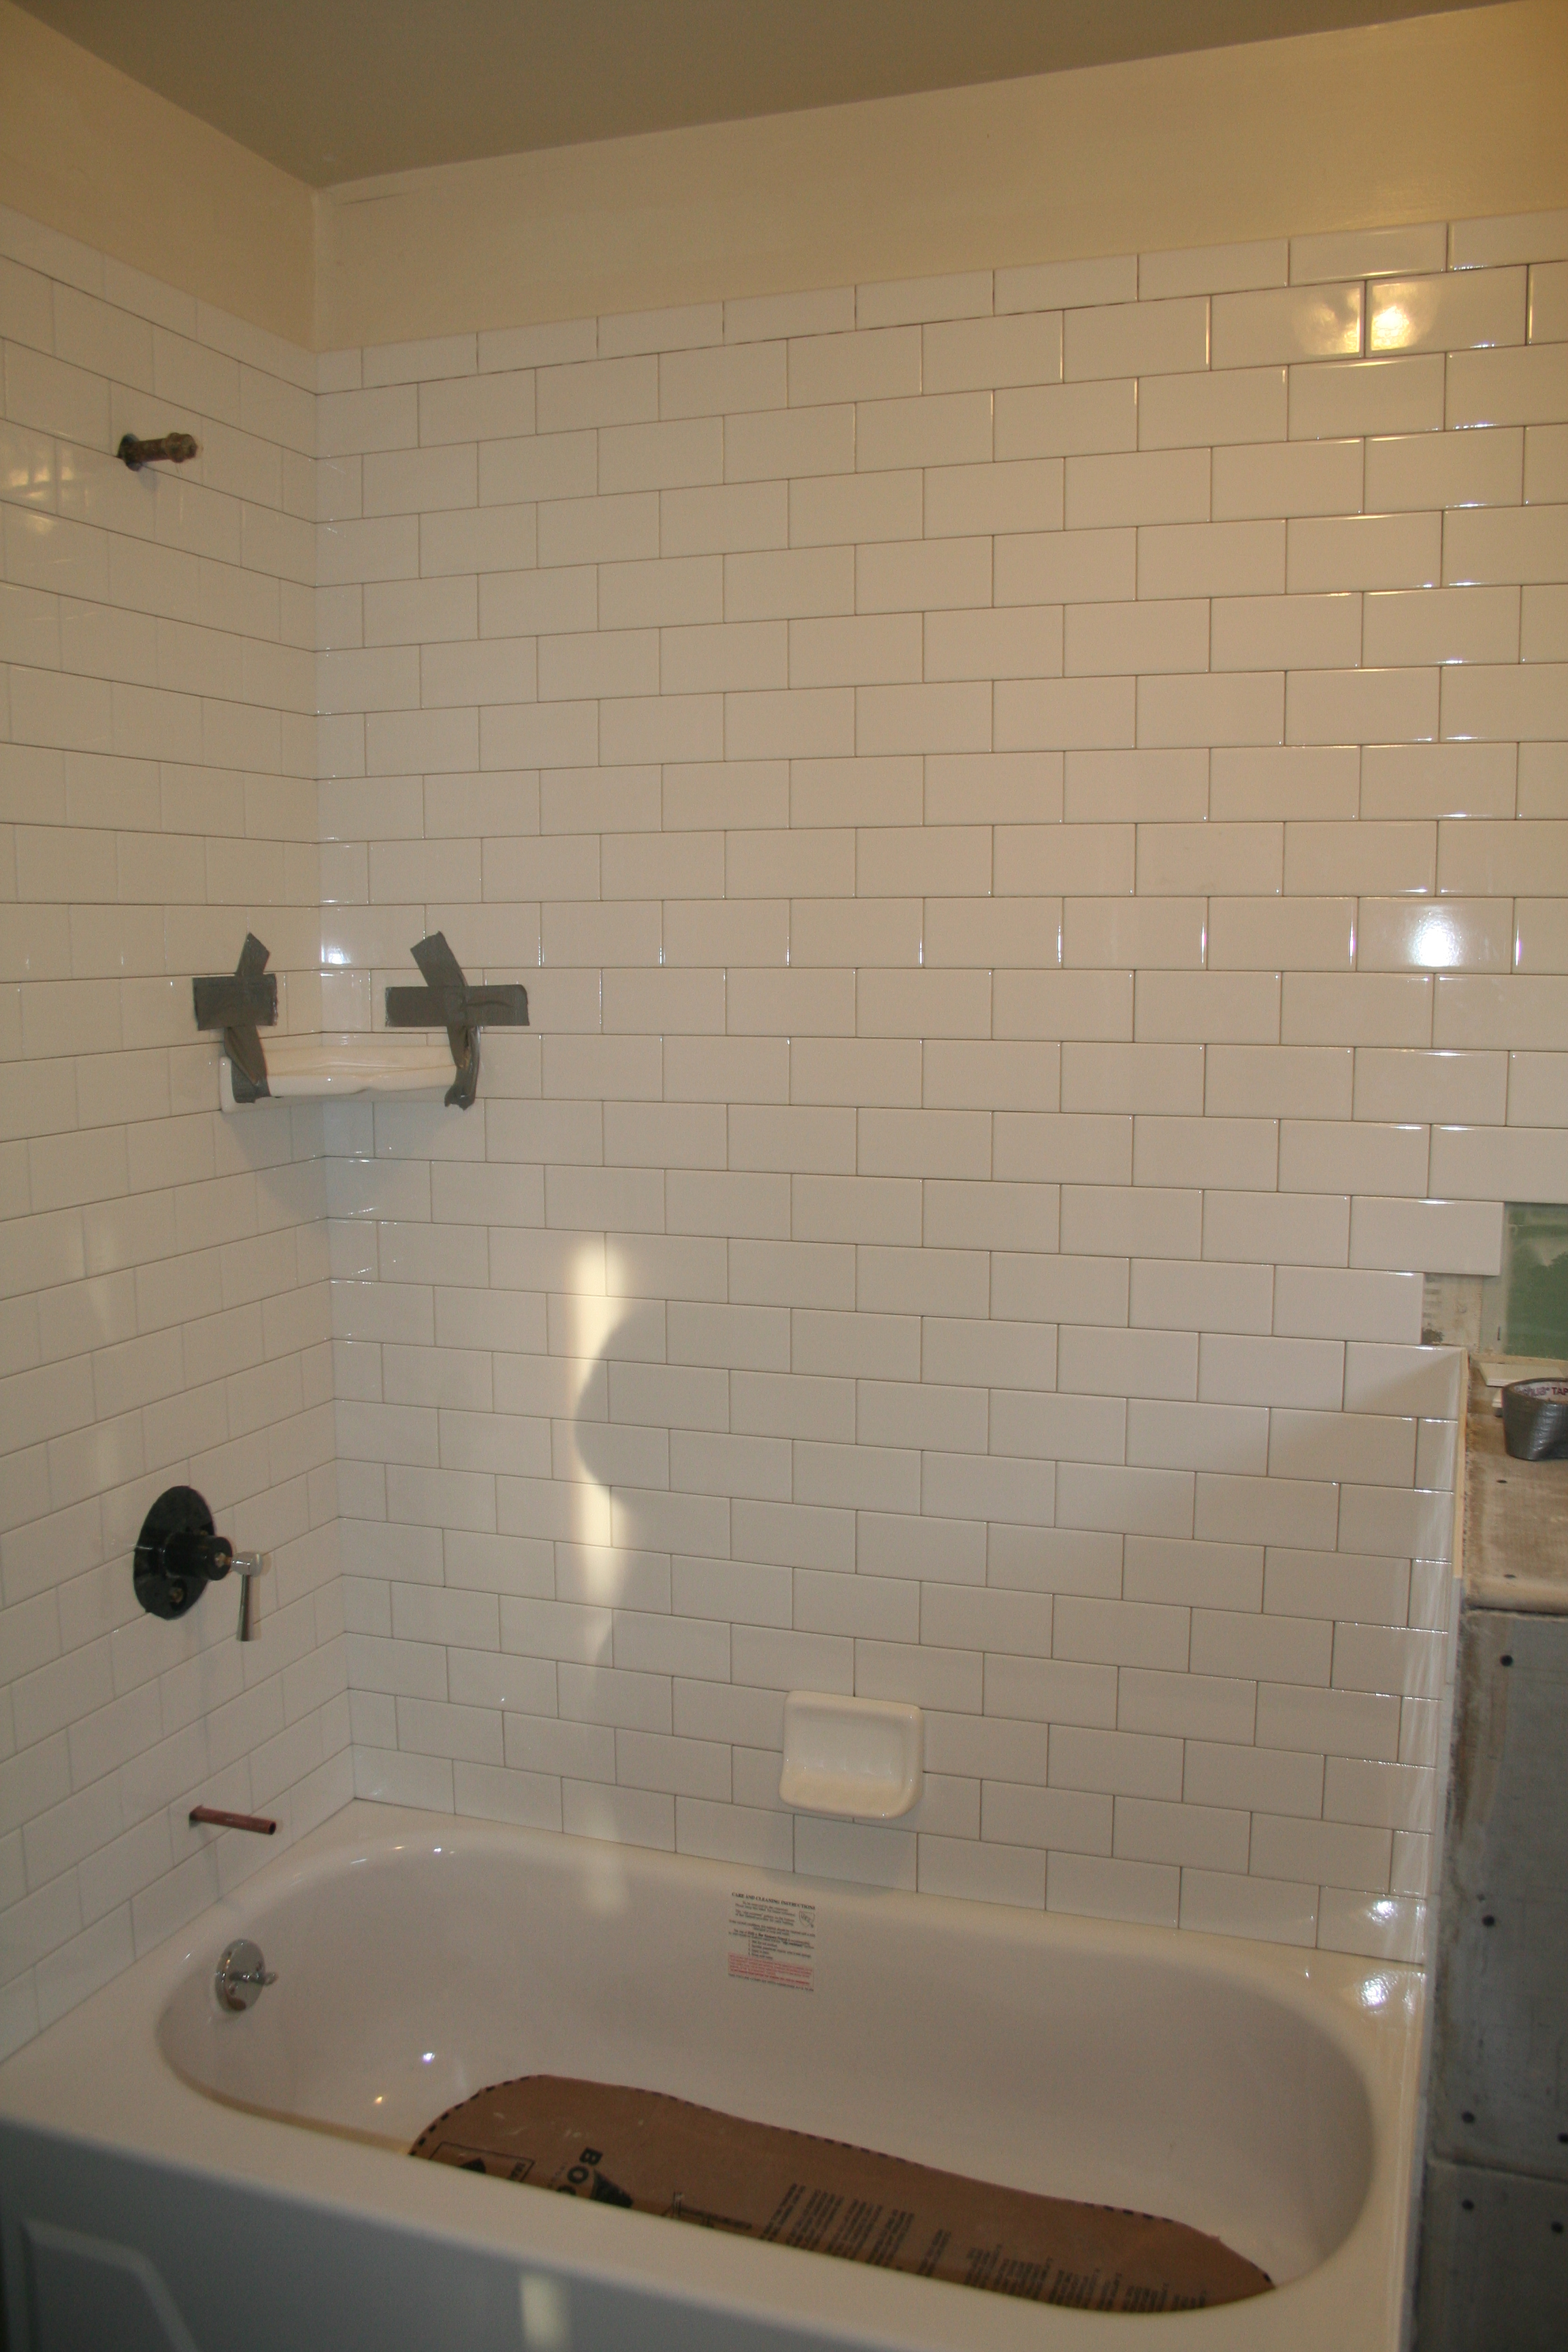 Bathroom shower tile tub bathroom tub for Bathroom ideas with tub and shower